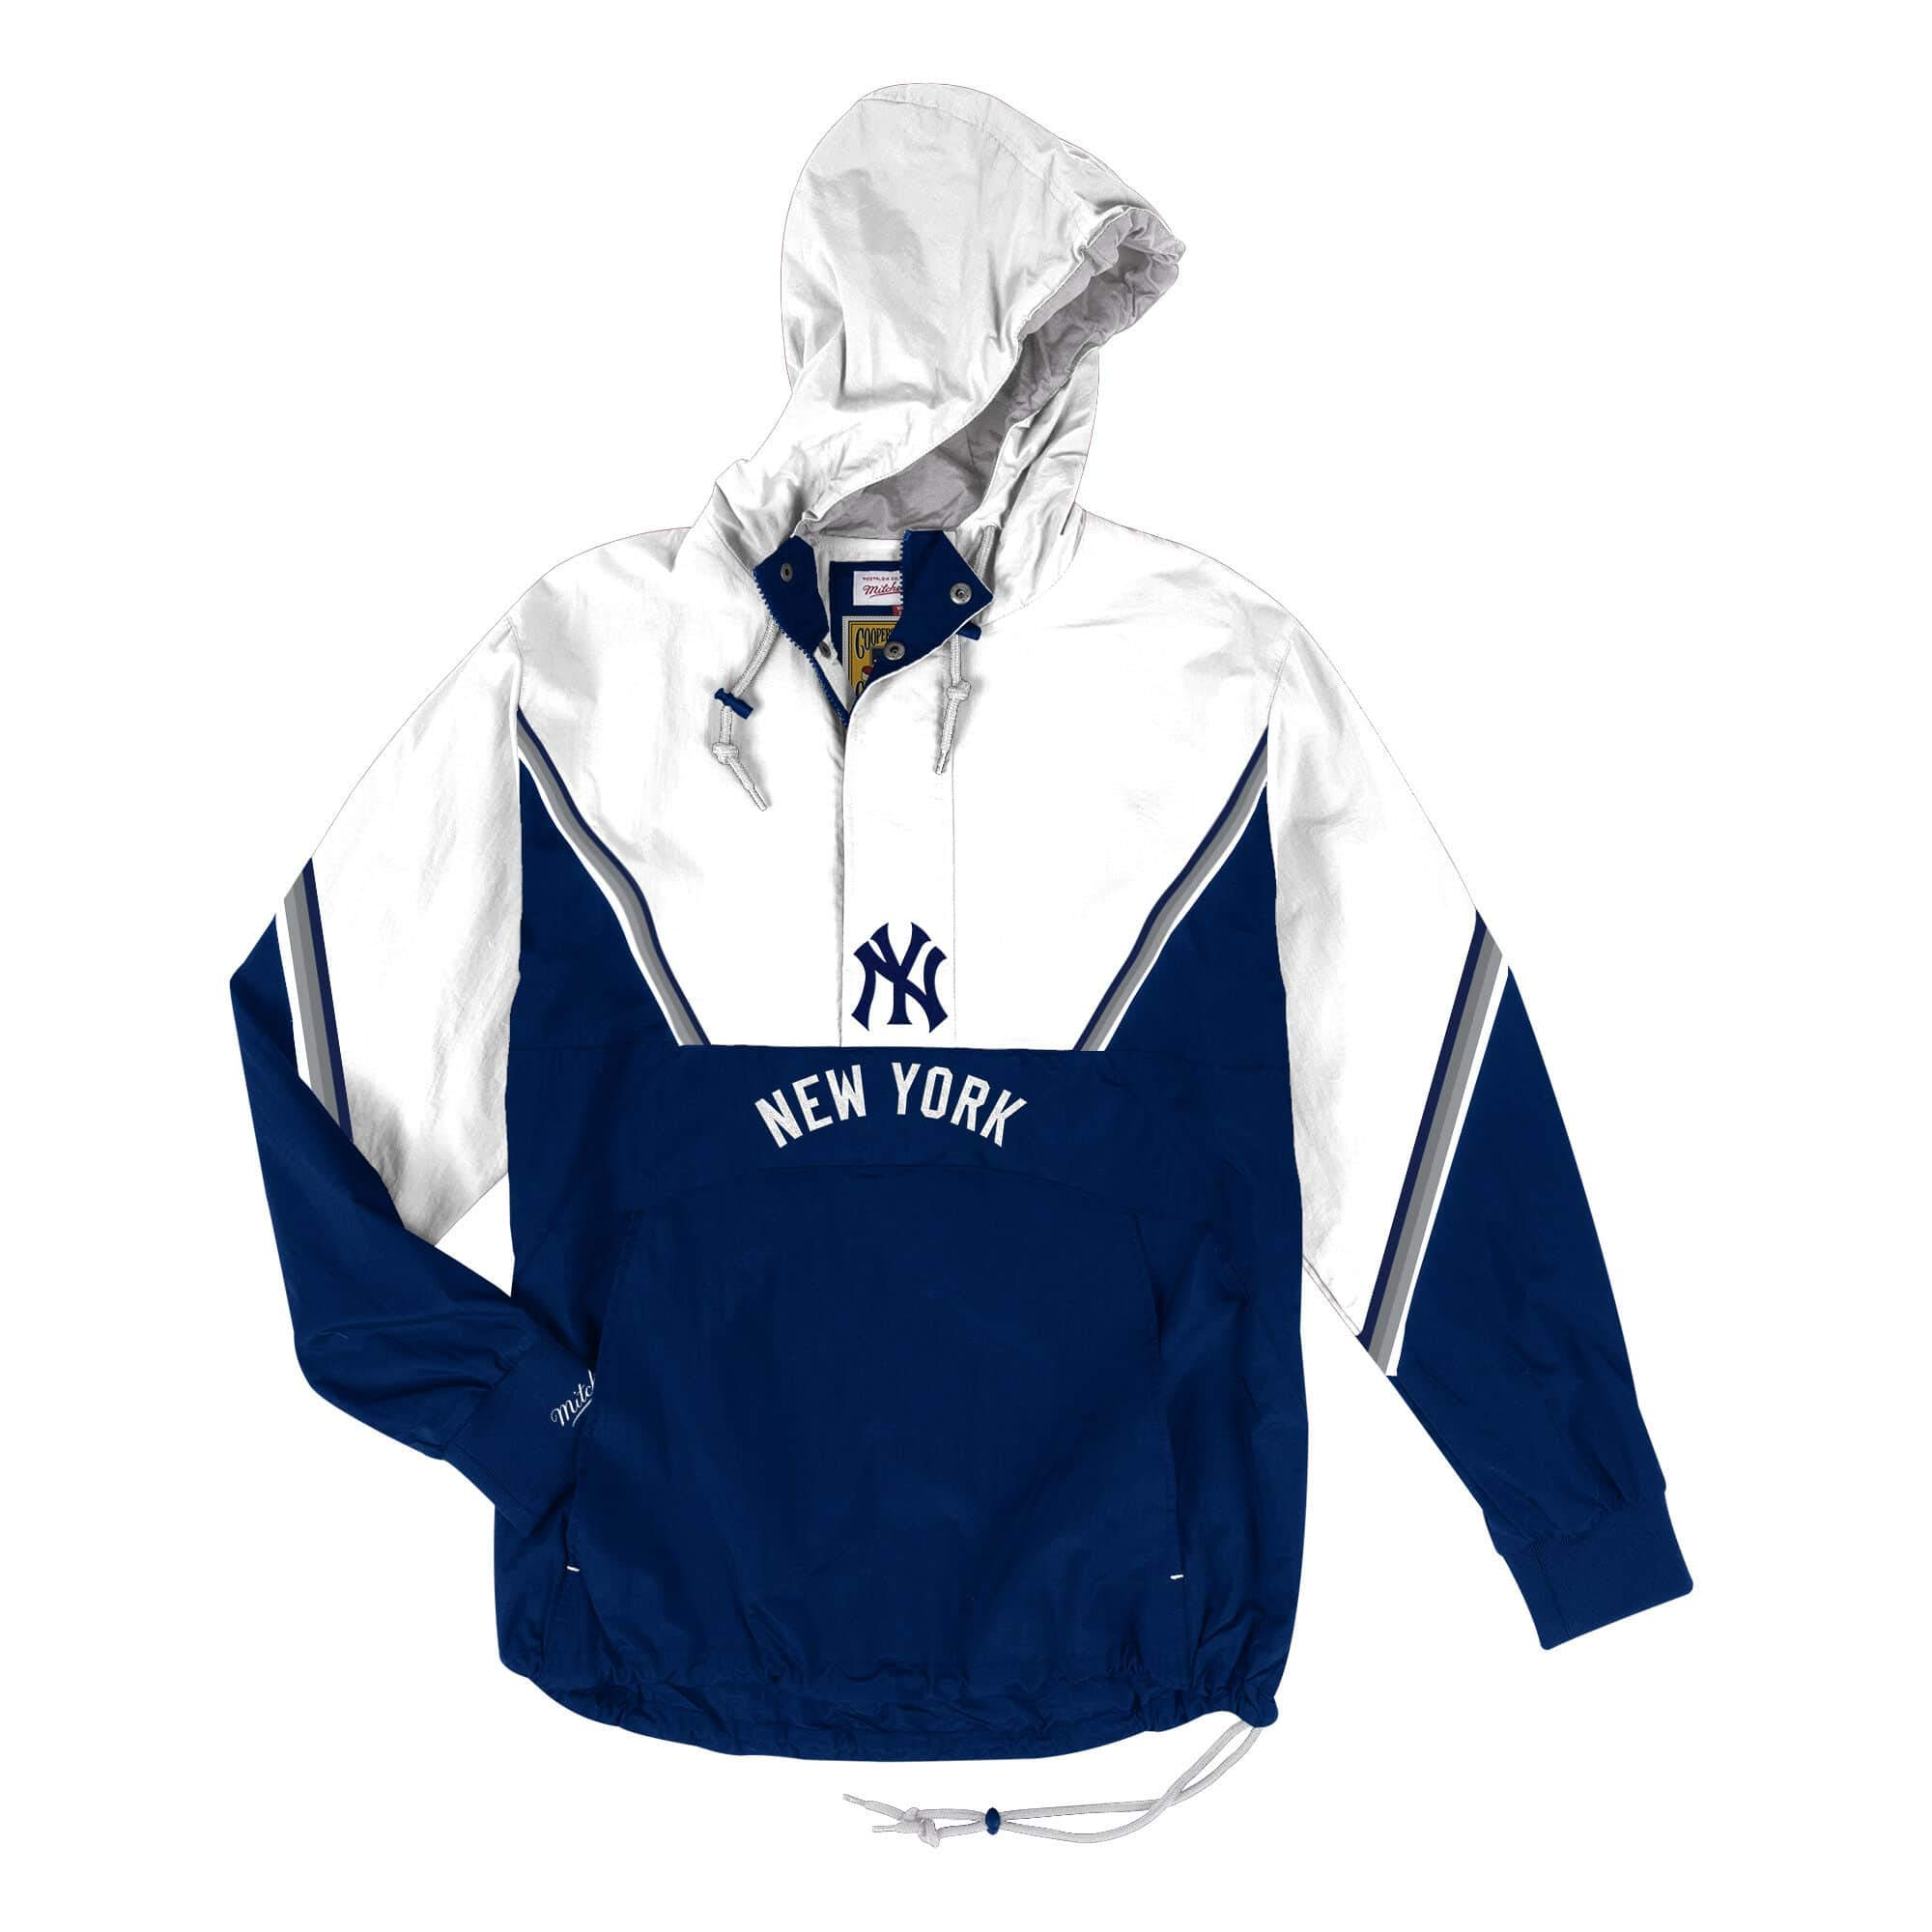 purchase cheap d453b 1e8d6 Mitchell And Ness New York Yankees Jacket Top Deals & Lowest ...